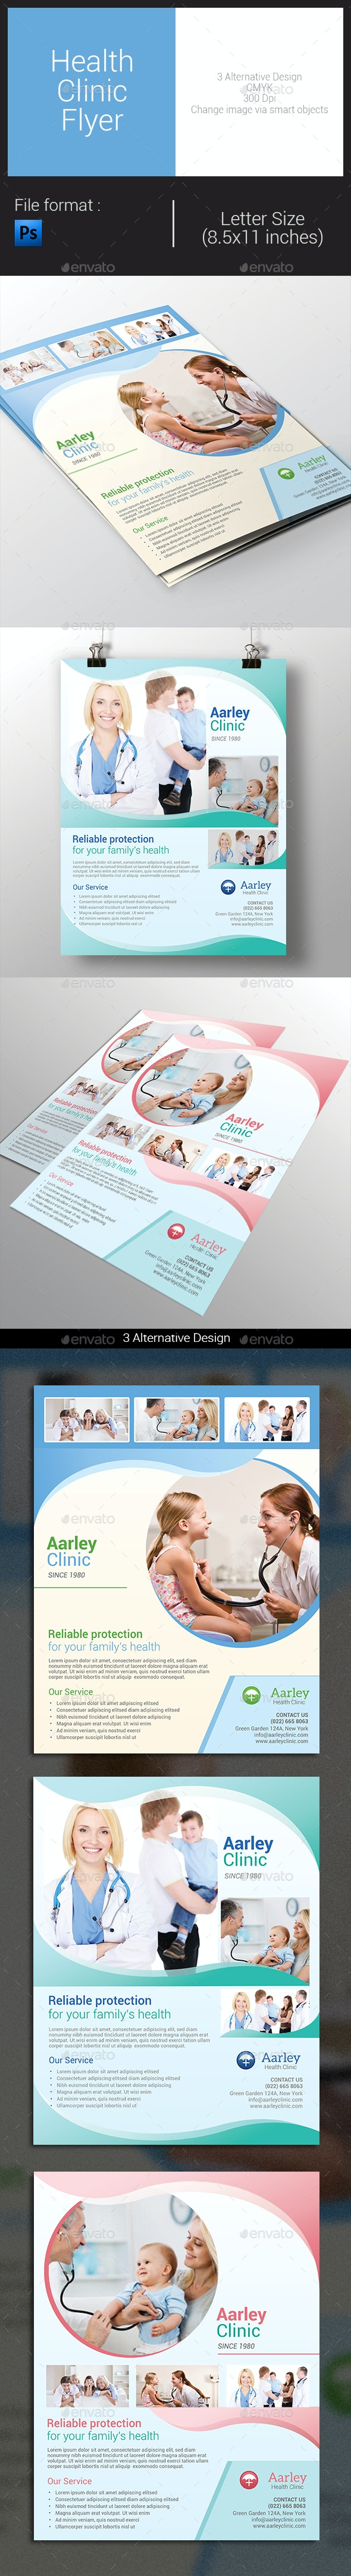 Health Clinic Flyer - Corporate Flyers